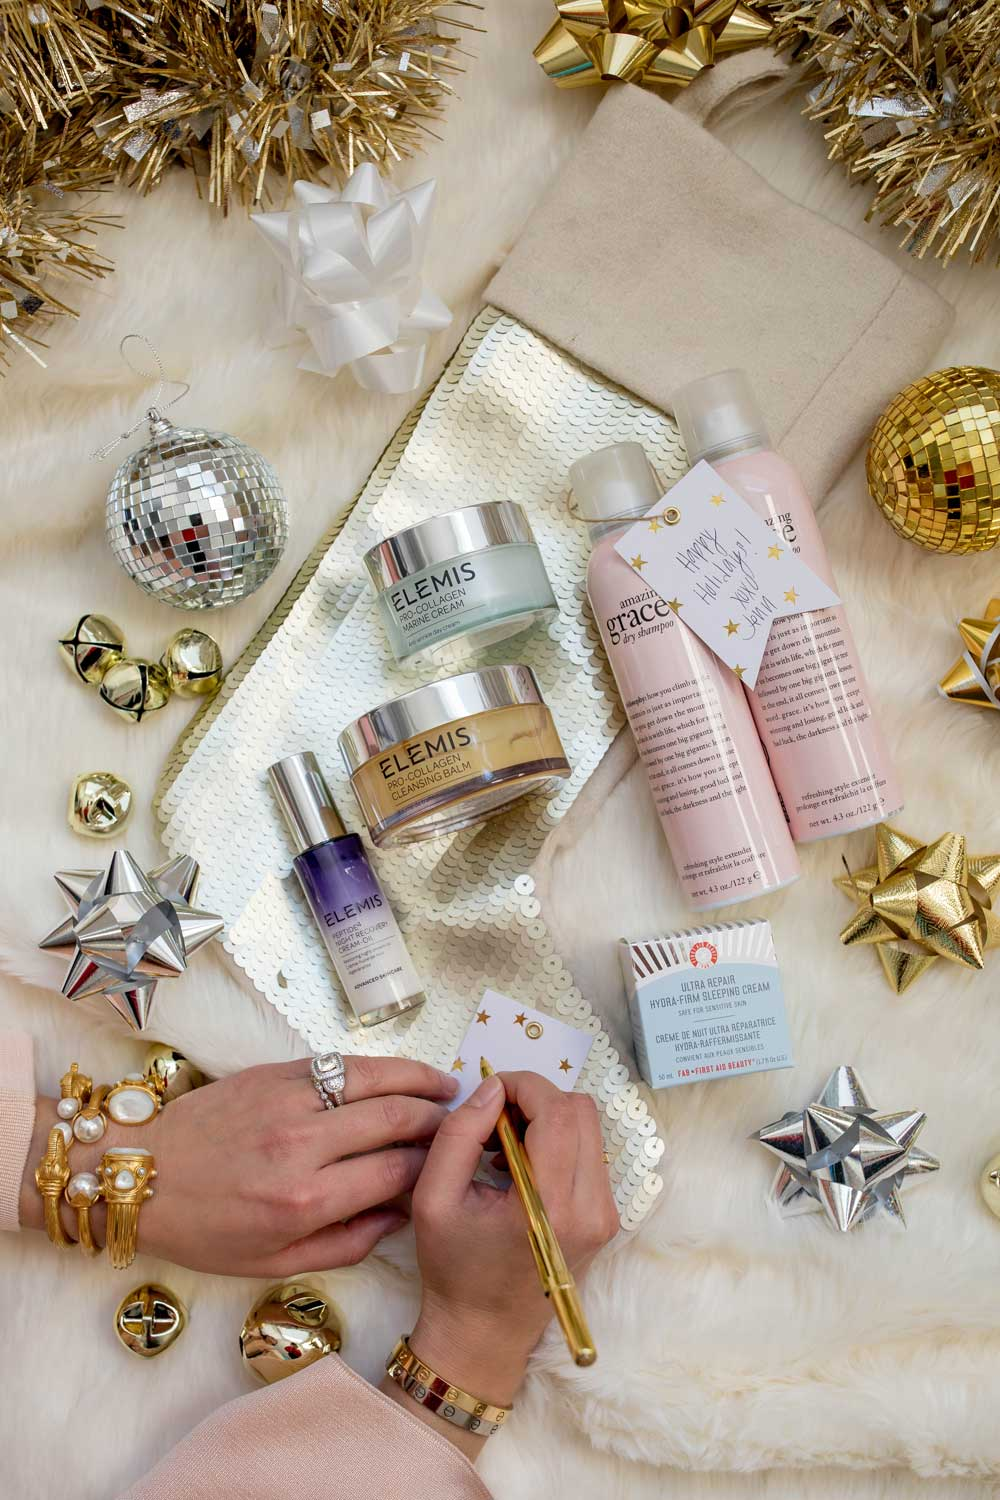 Best Holiday Gifts From QVC